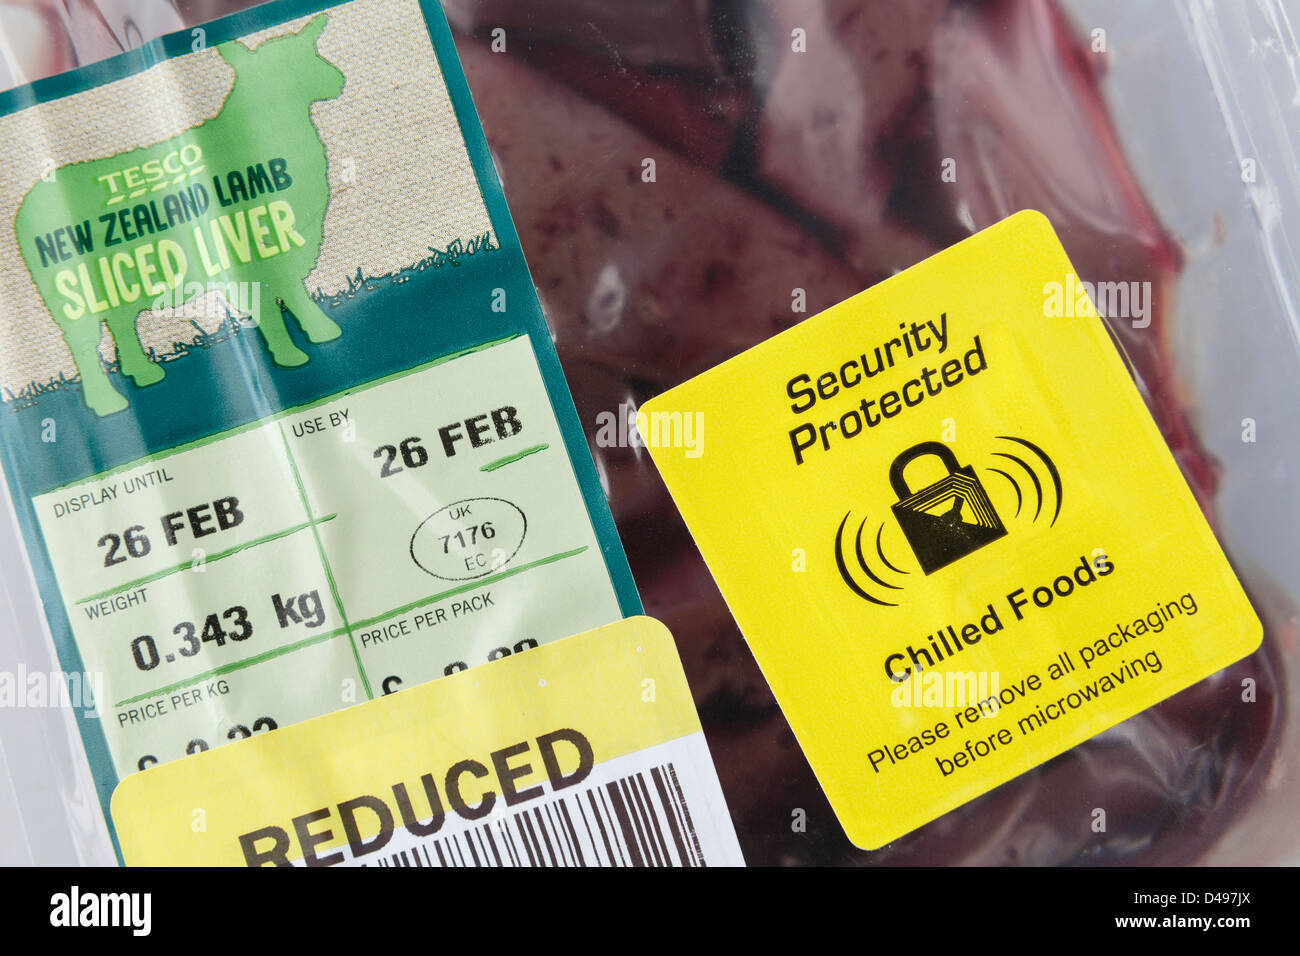 http://c8.alamy.com/comp/D497JX/yellow-security-protected-label-for-chilled-foods-on-a-reduced-packet-D497JX.jpg